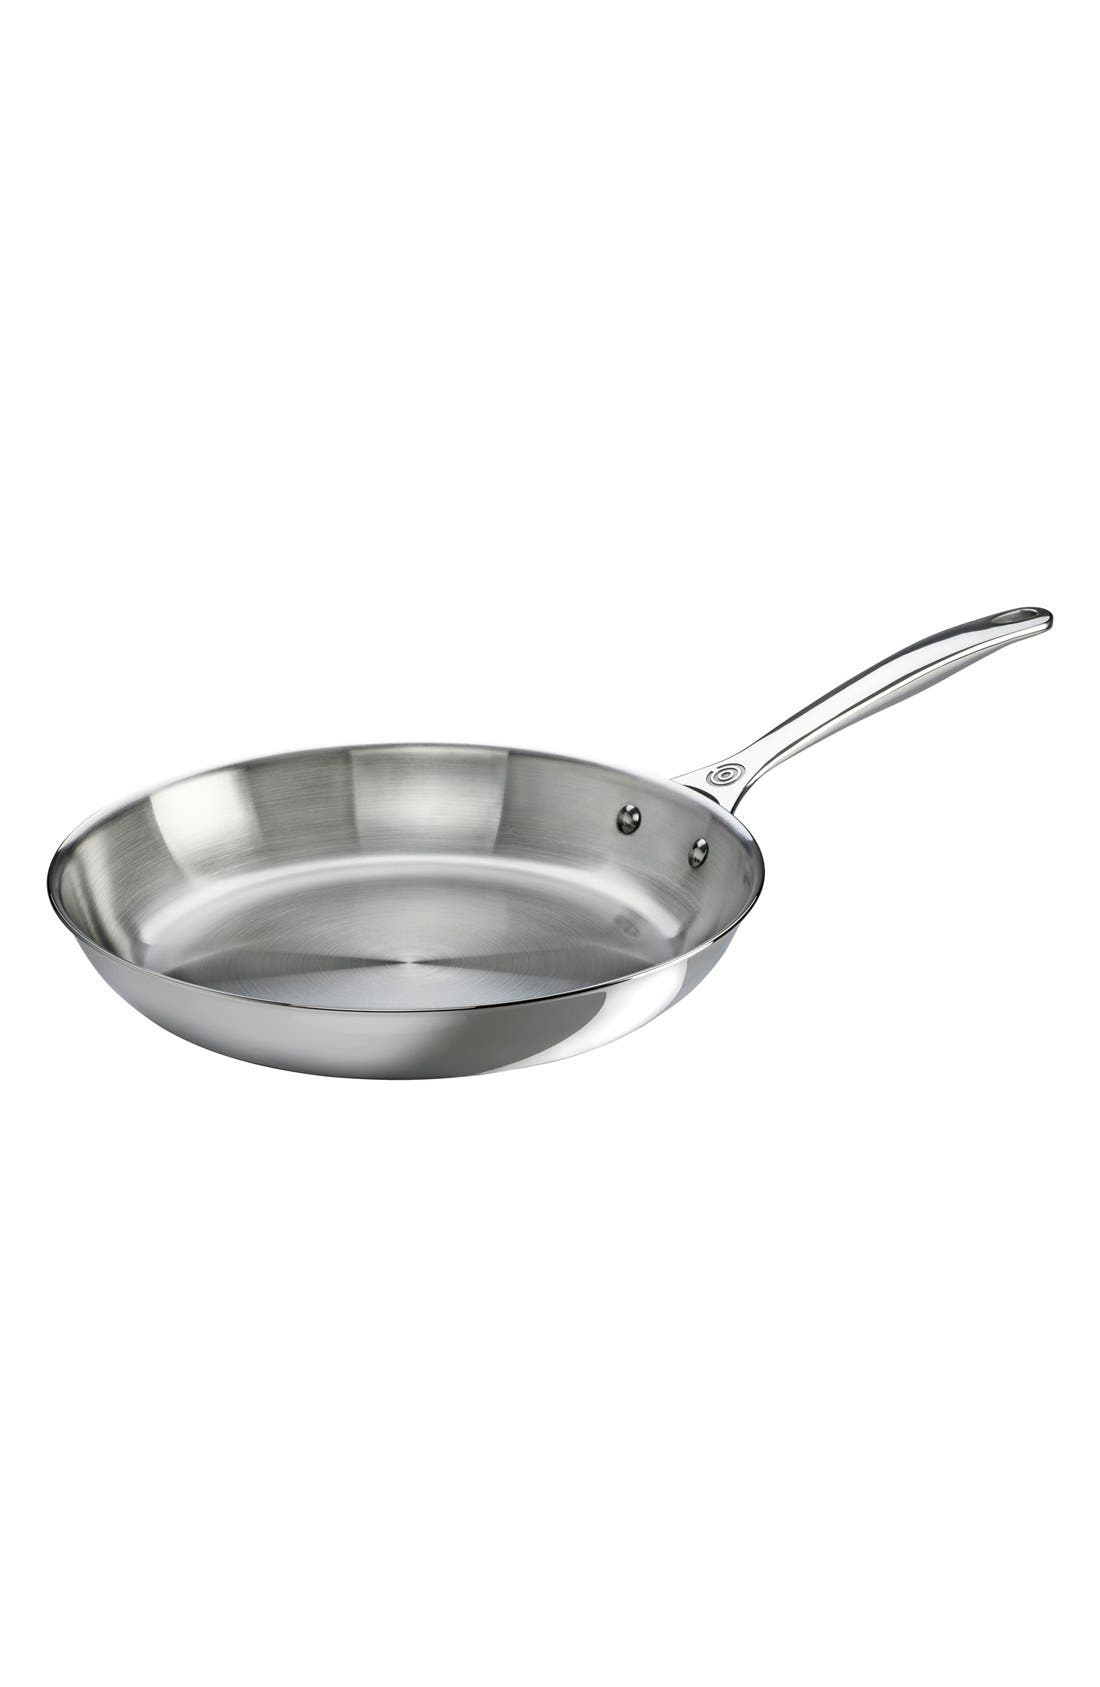 12 Inch Stainless Steel Fry Pan,                             Main thumbnail 1, color,                             Silver